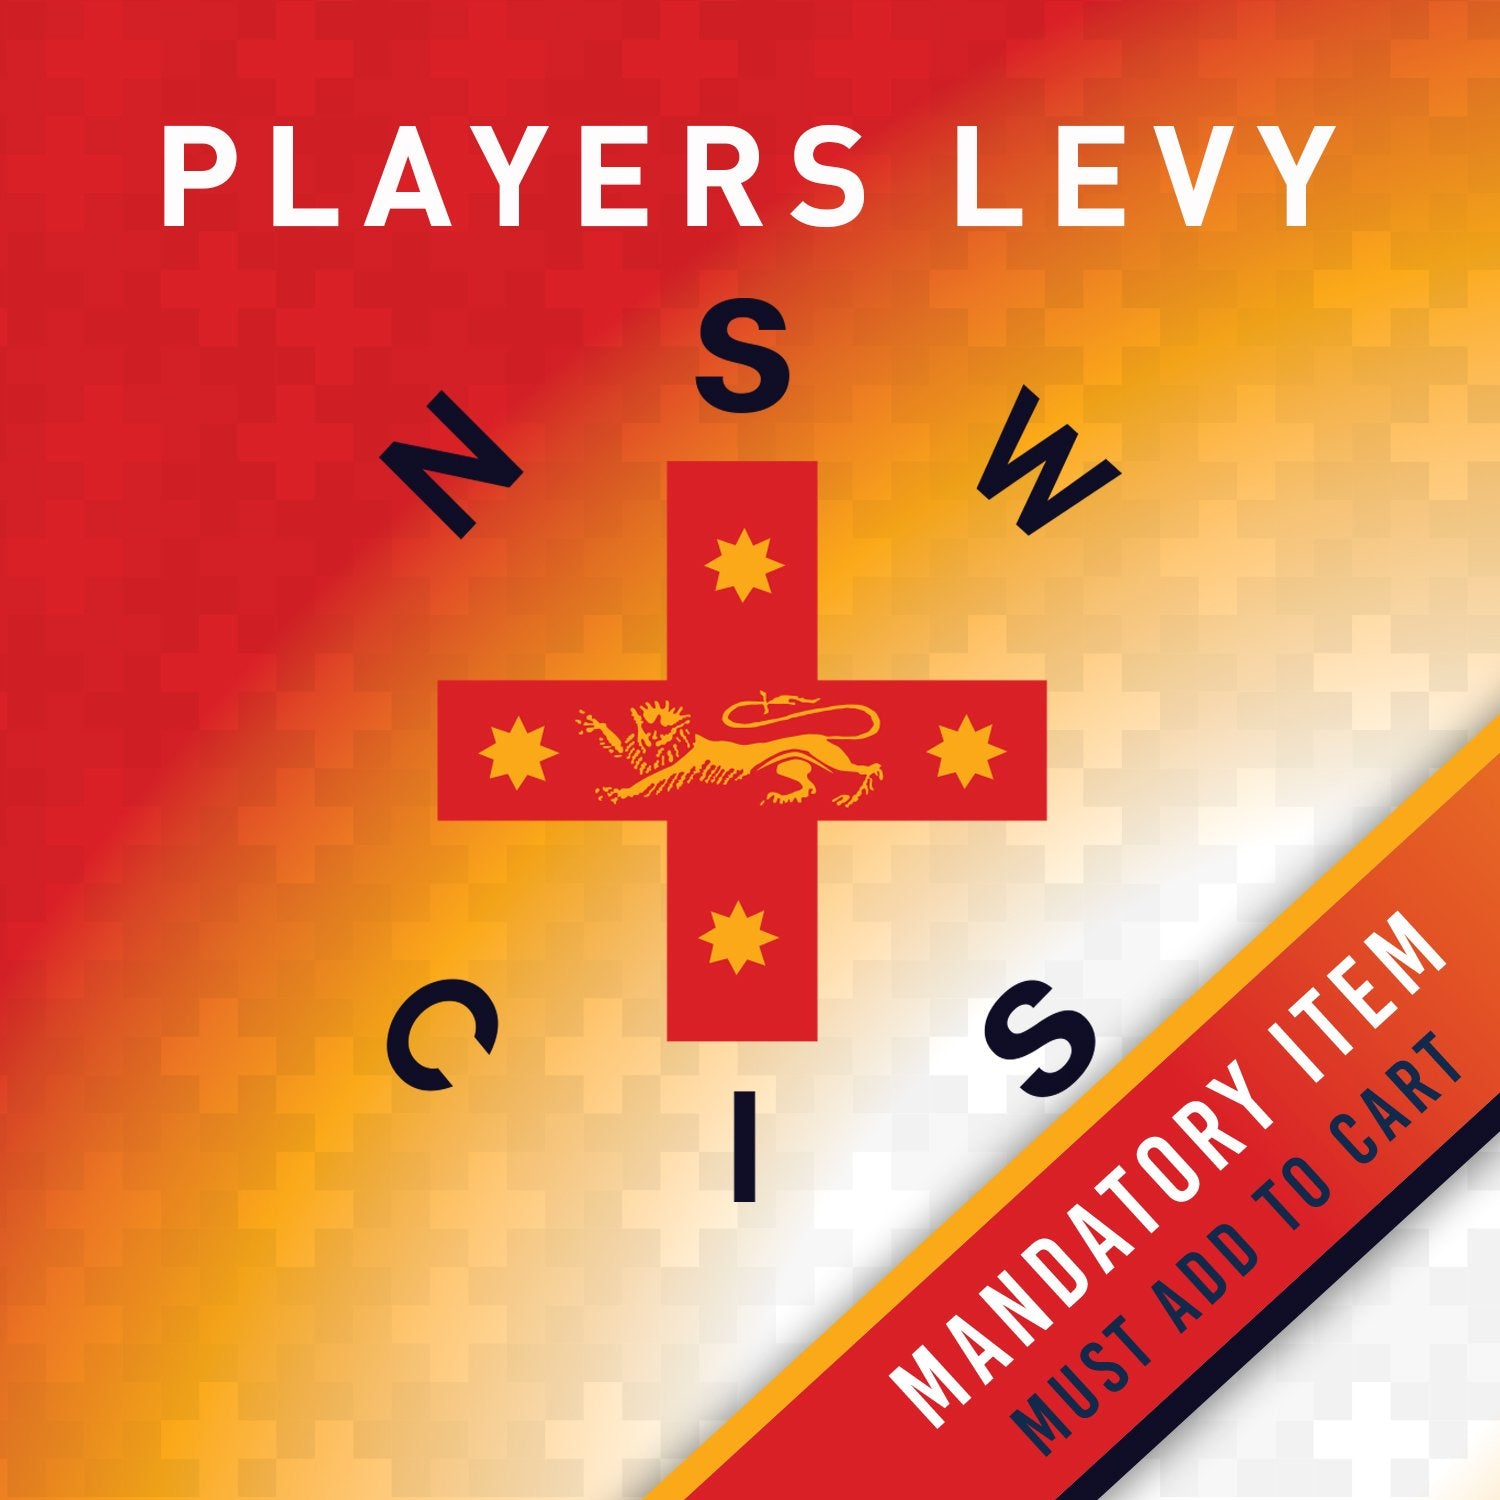 MANDATORY ITEM - PLAYERS LEVY - NSW CIS Secondary Boys 17 & Under Water Polo